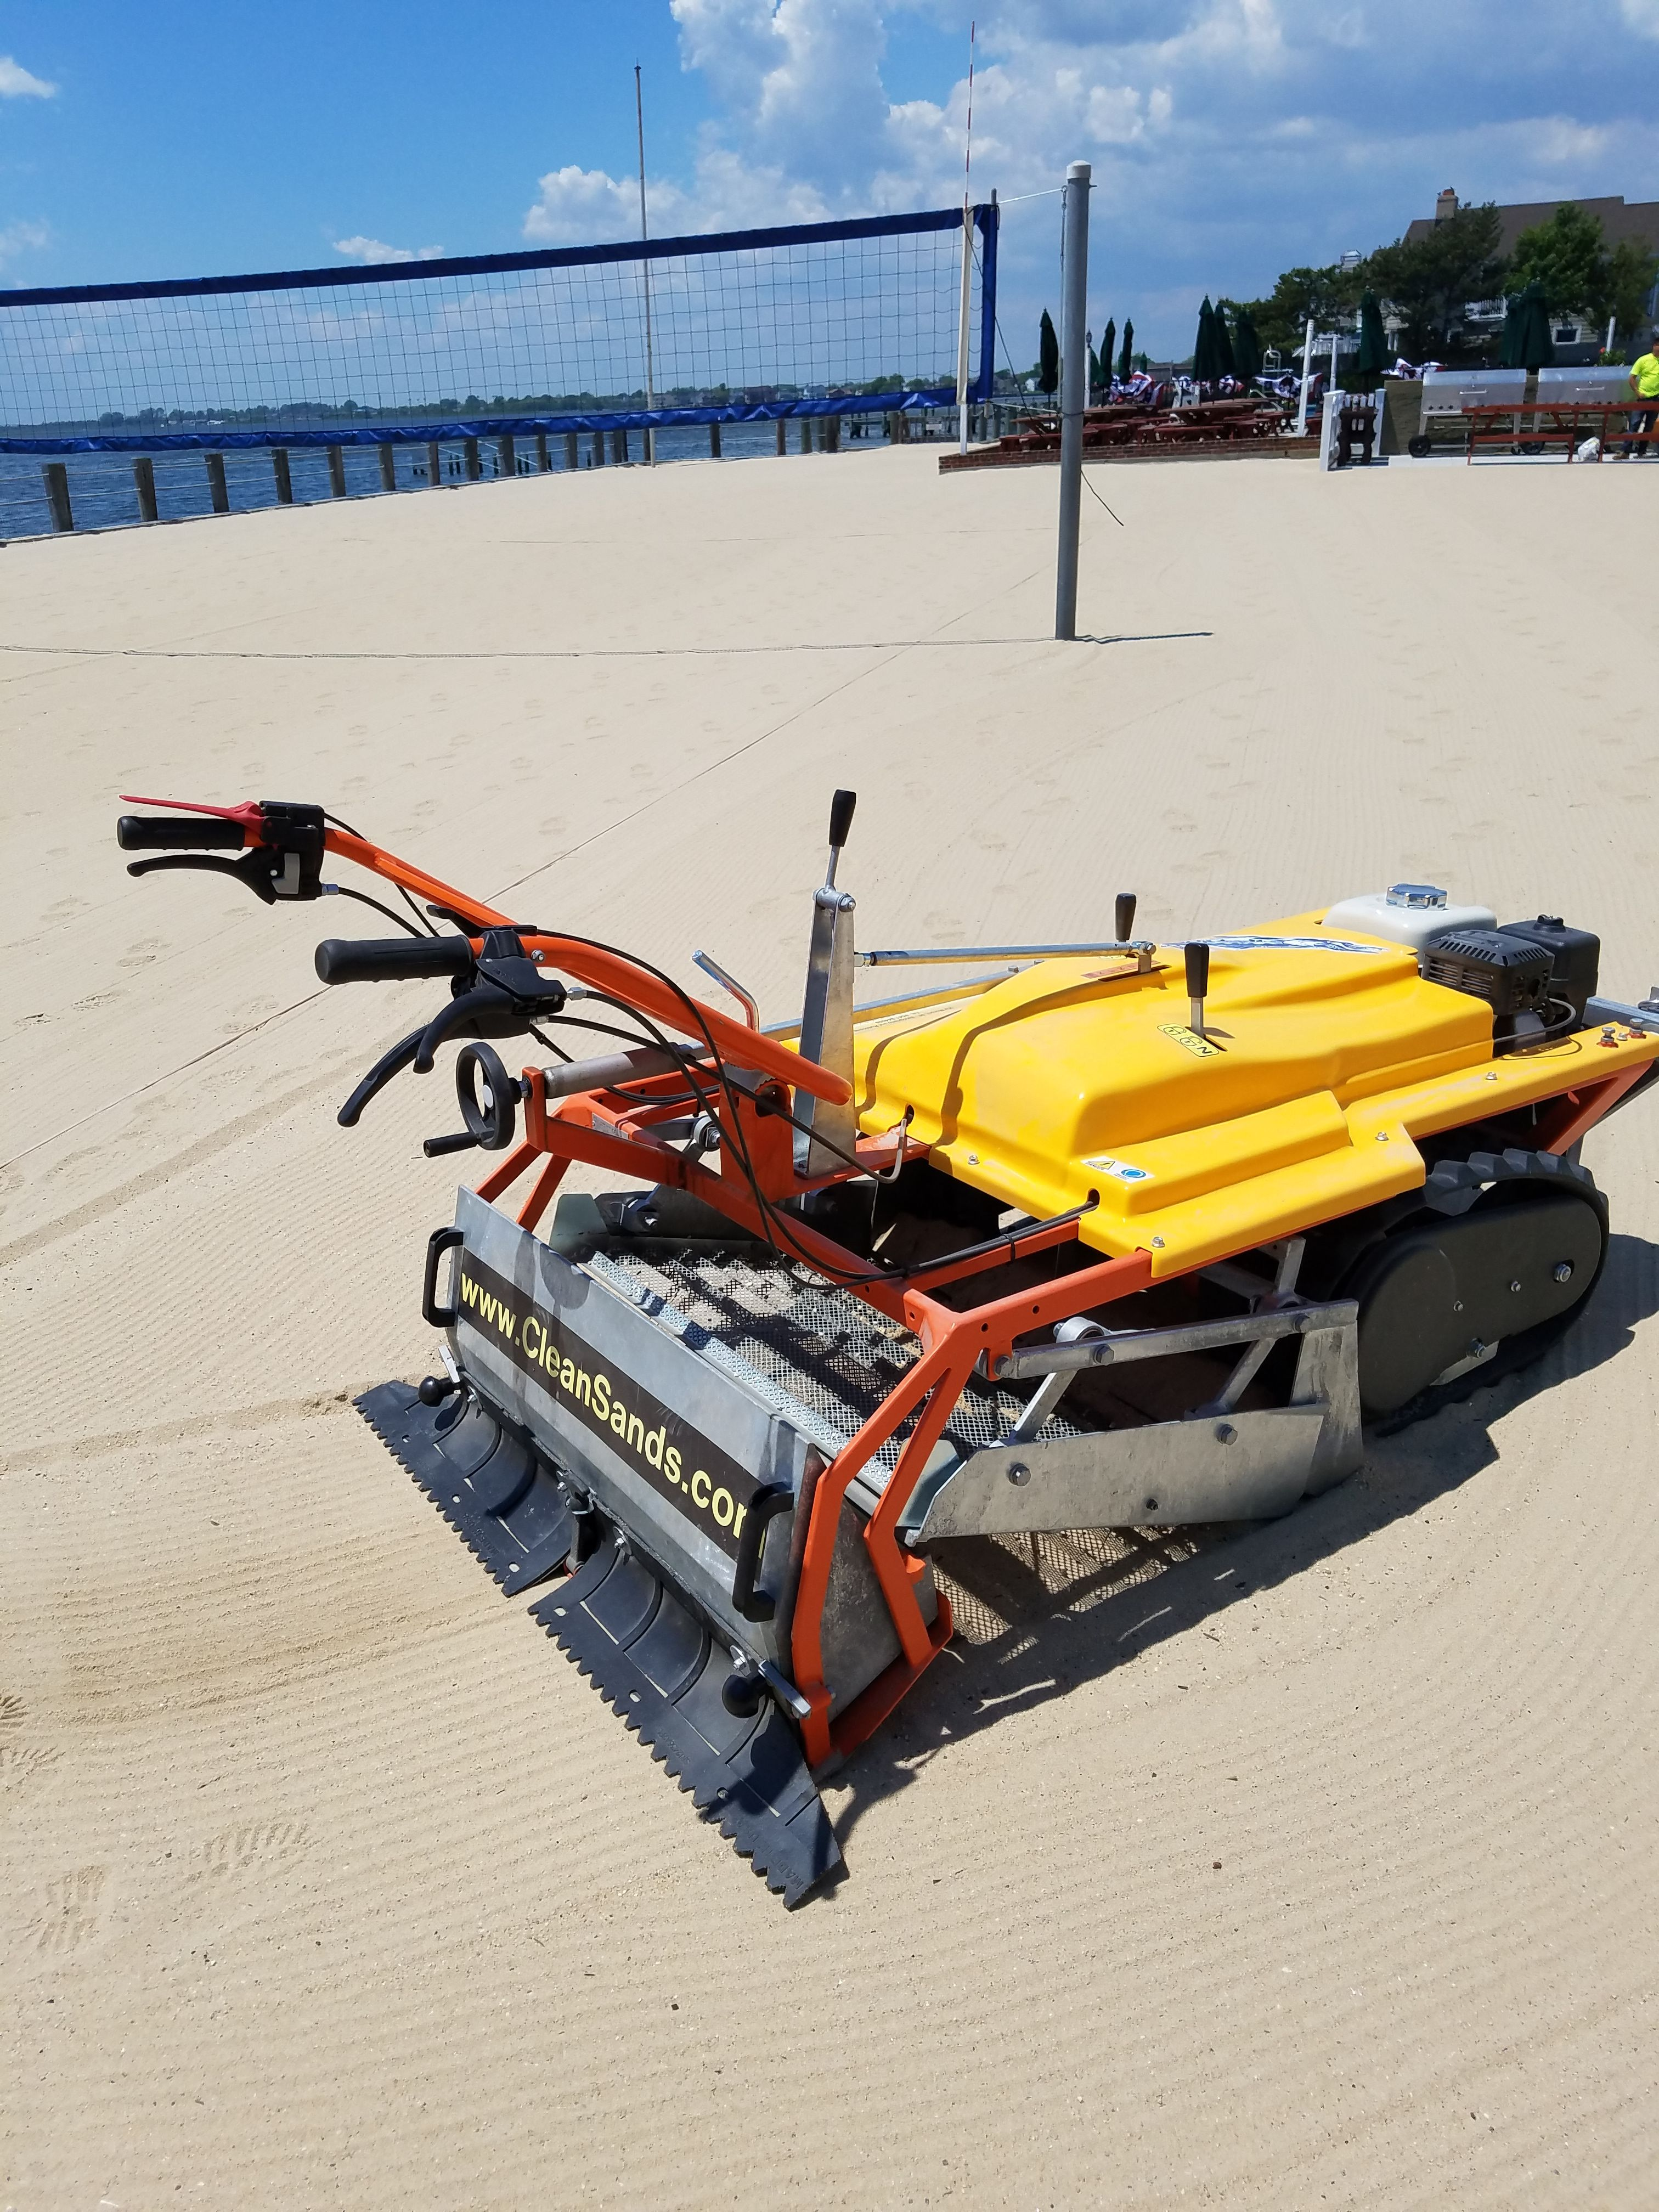 Volleyball Sand Court Sifting Grooming Cleaning Equipment Beach Clean Beach